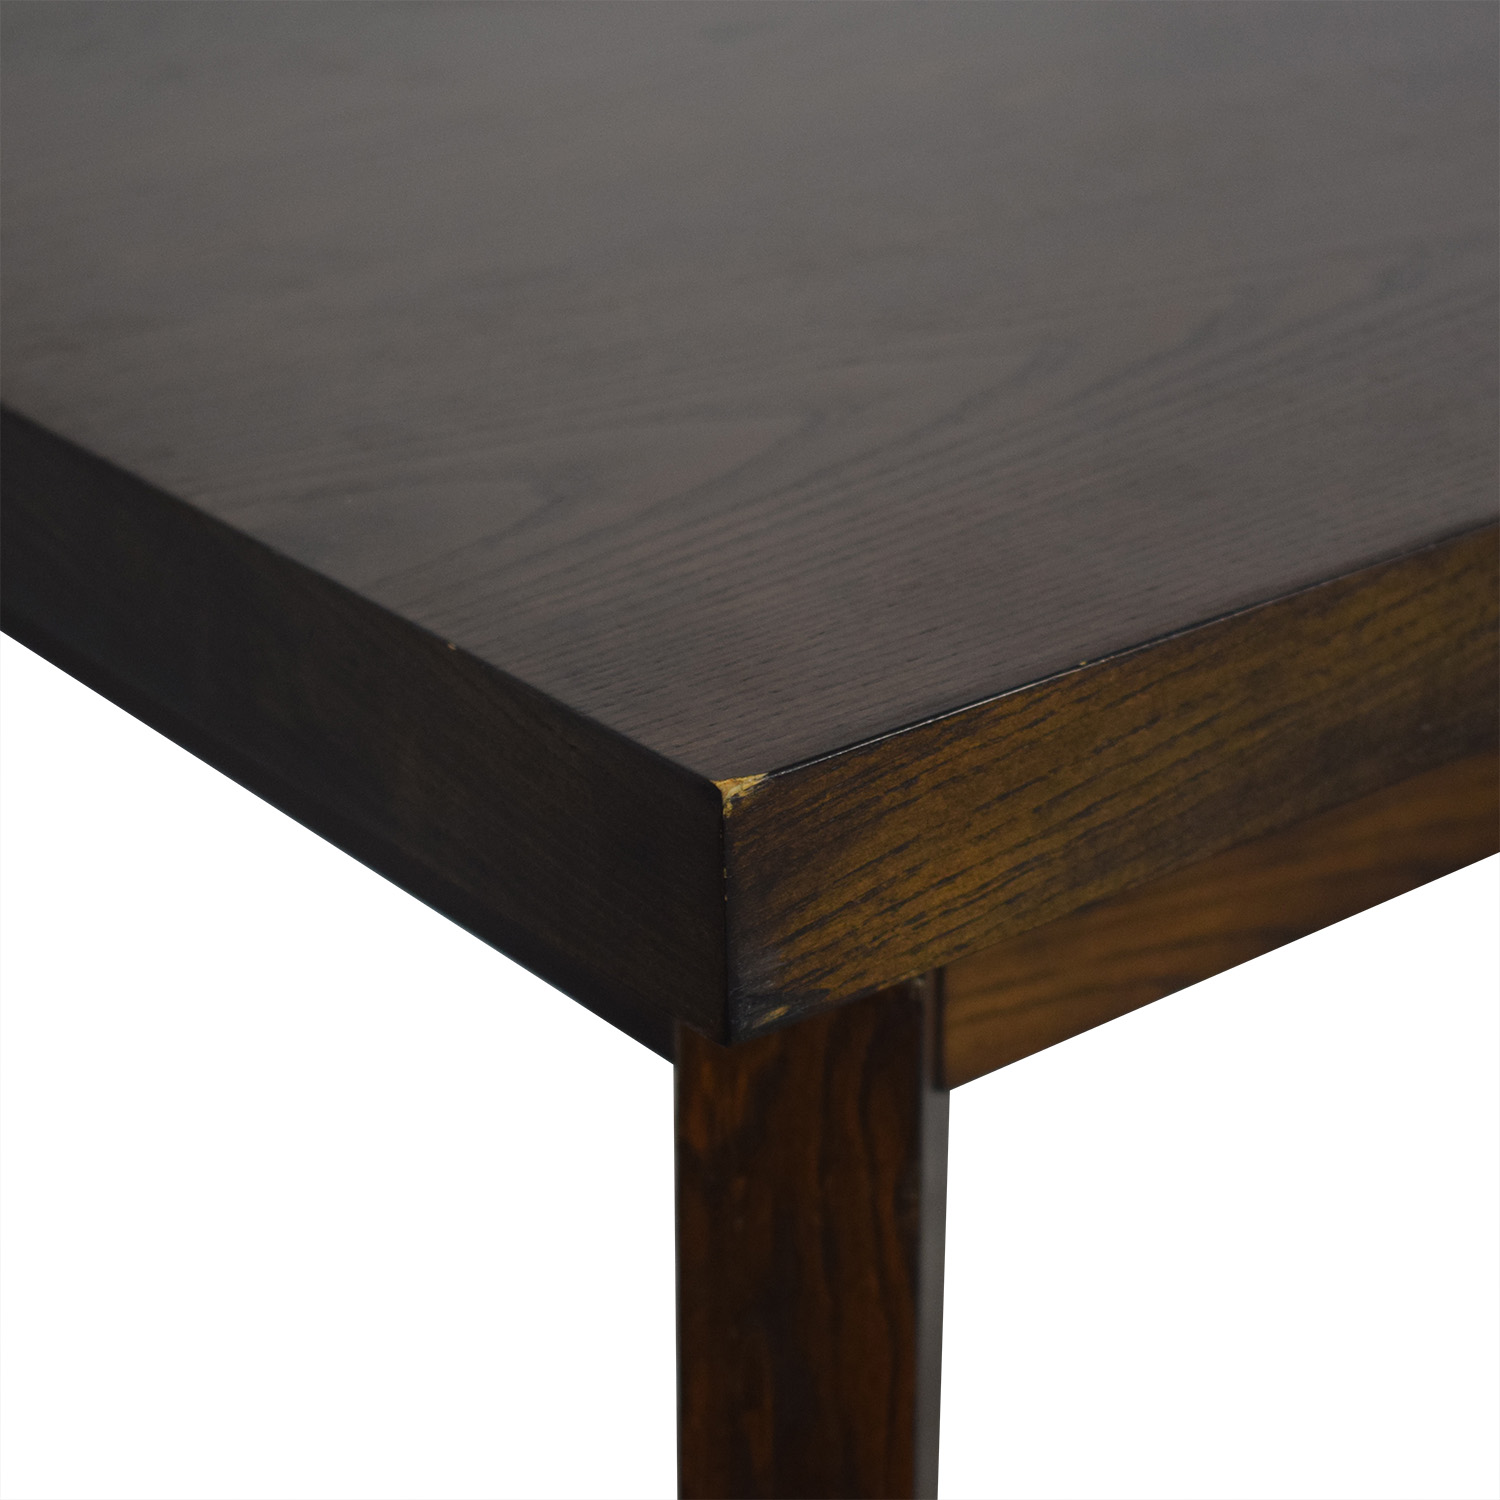 West Elm West Elm Angled-Leg Expandable Table dimensions